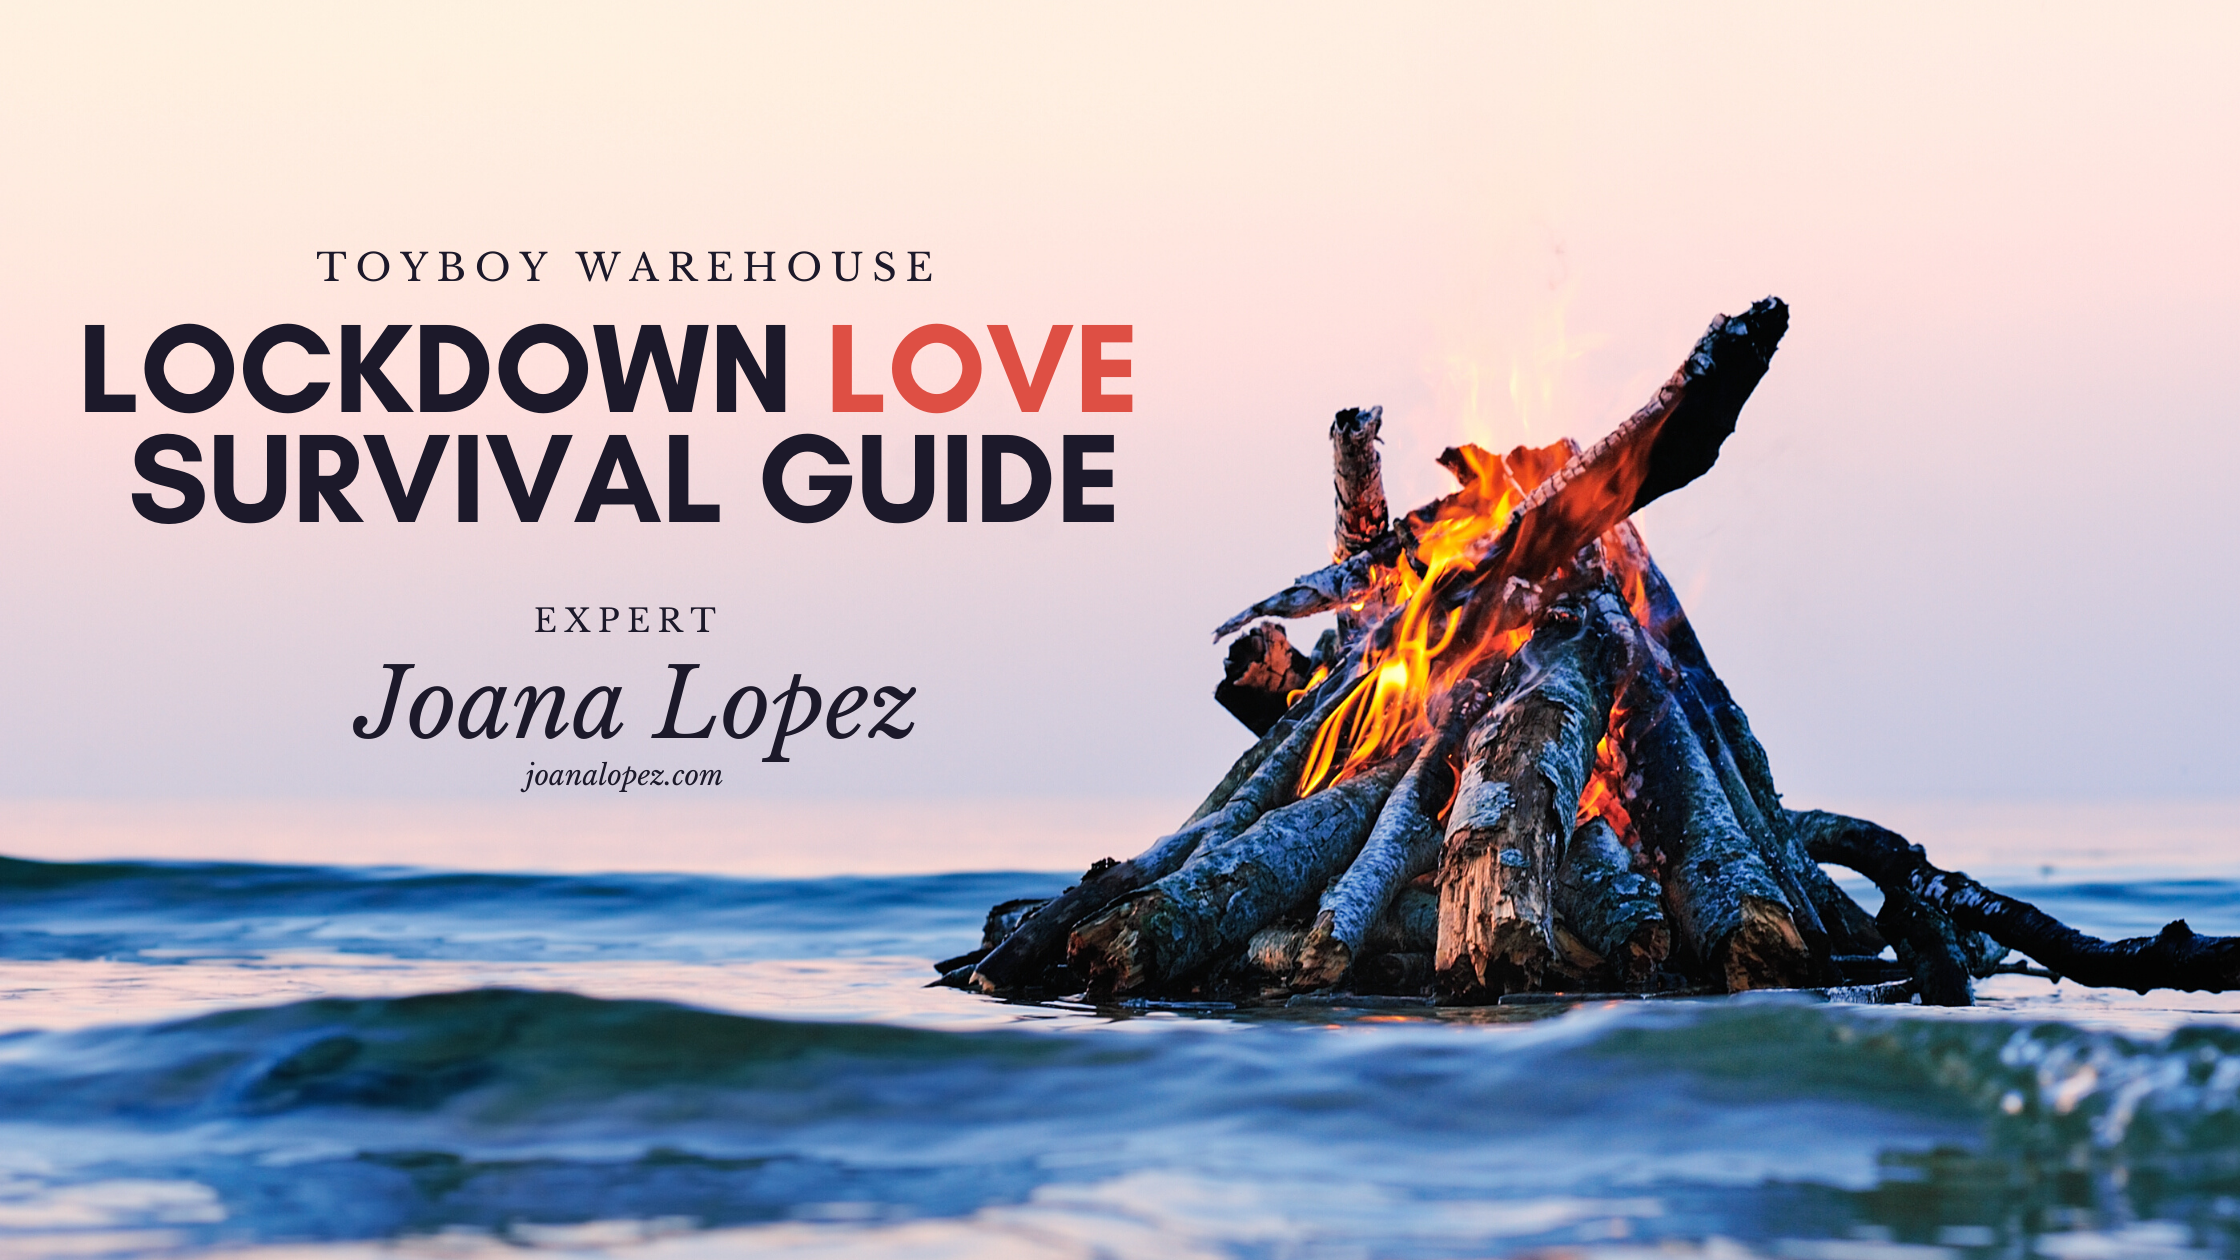 Lockdown Love Survival Guide – Expert: Joana Lopez